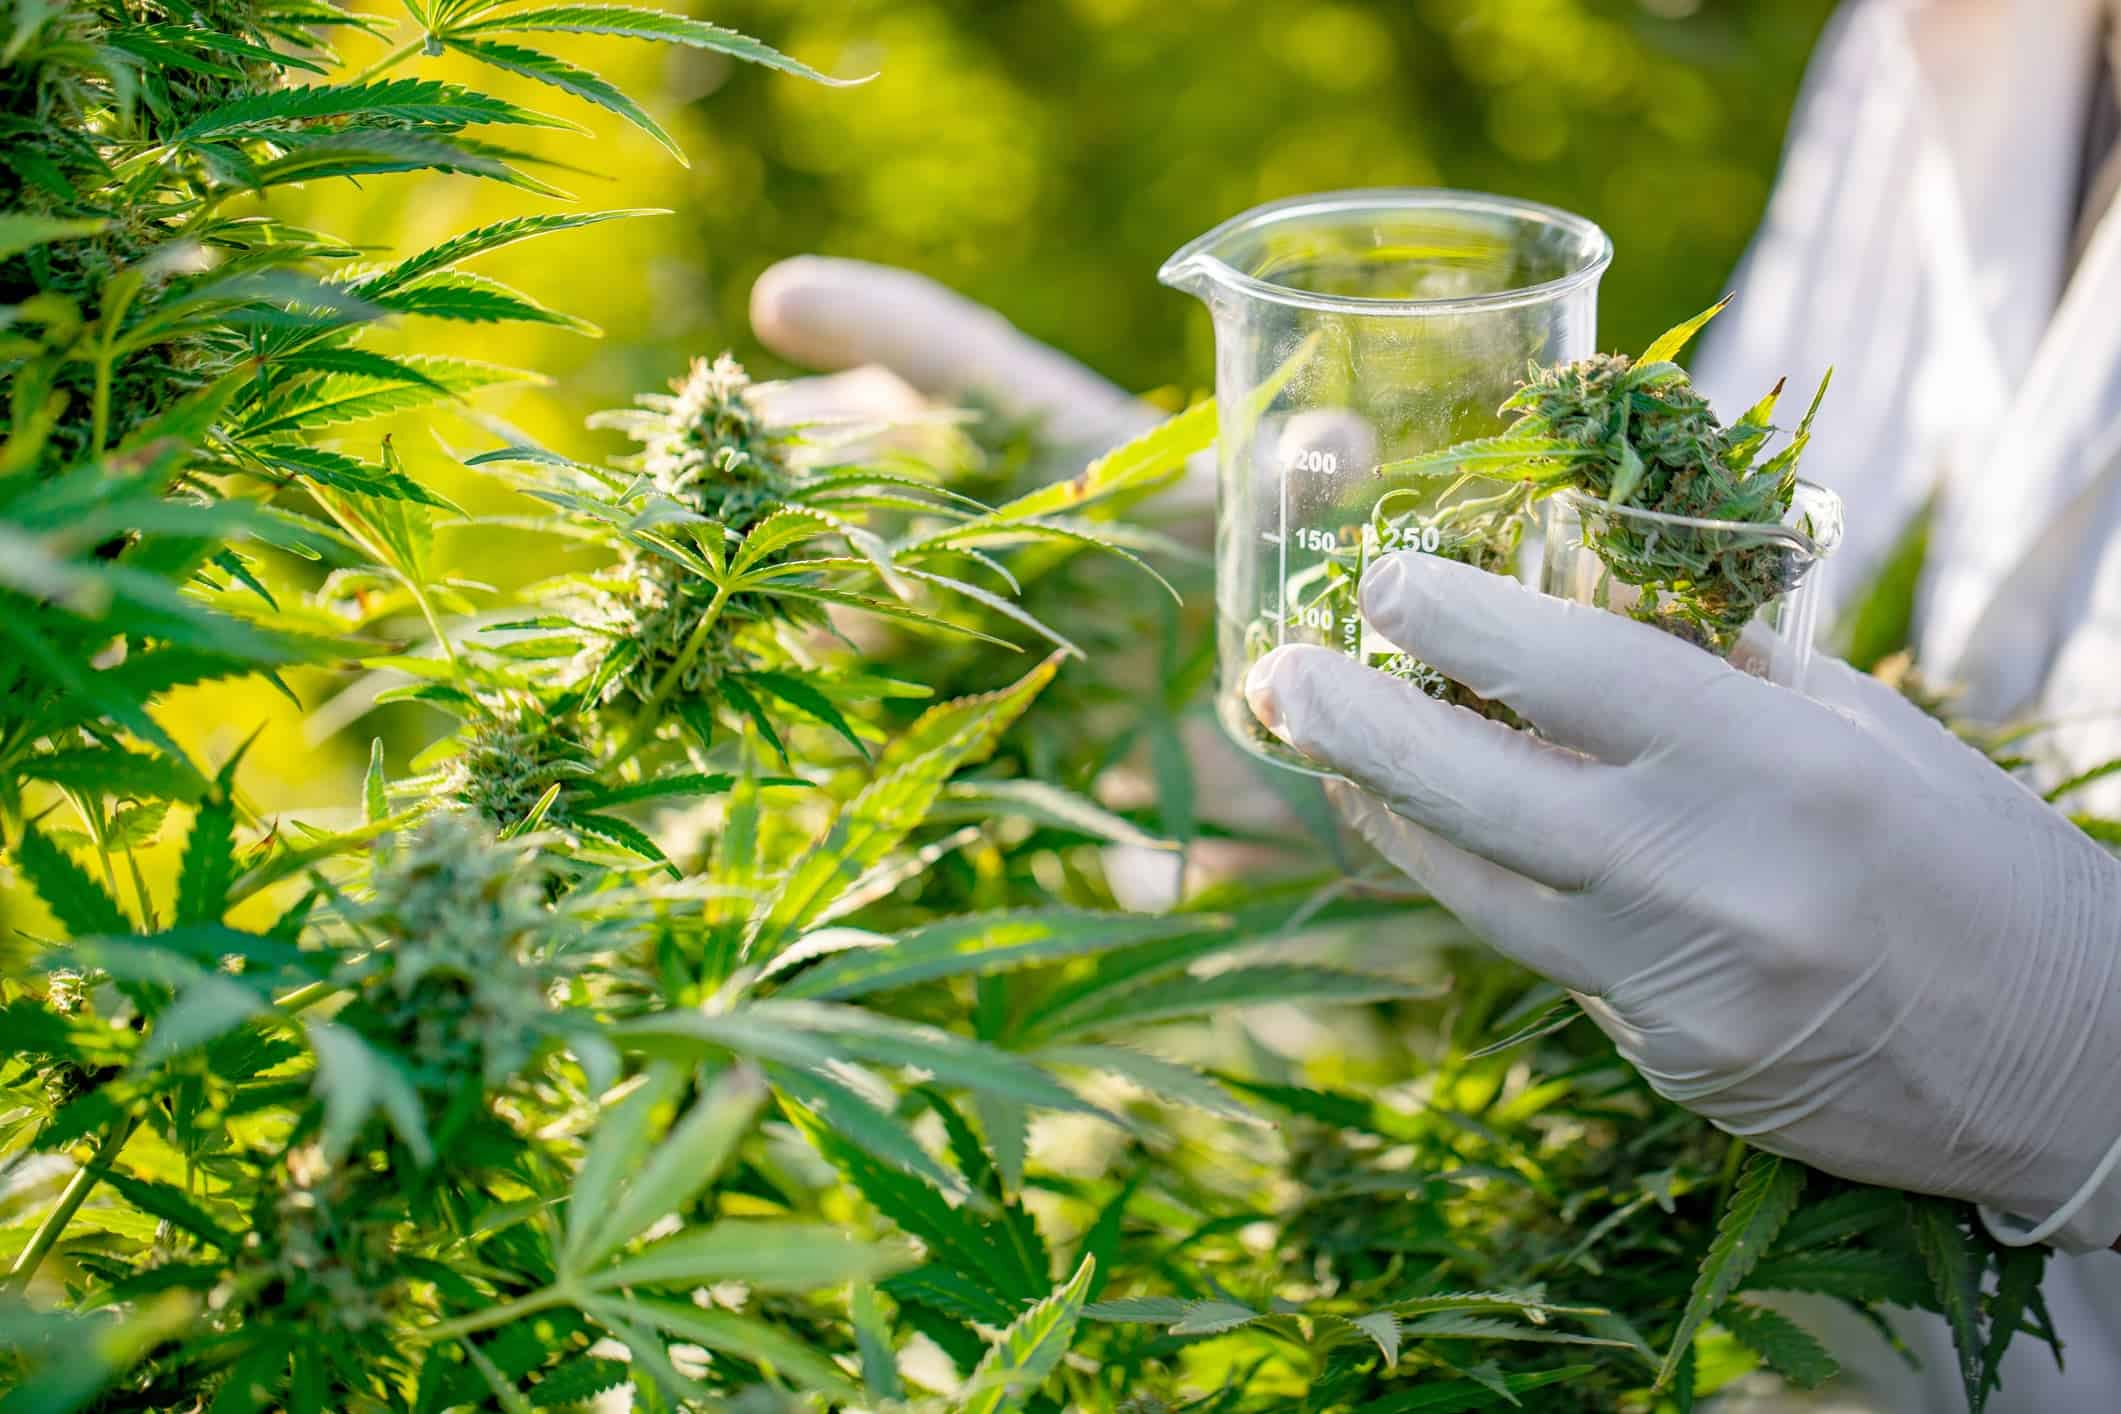 The Most Promising Research on CBD and Medical Marijuana